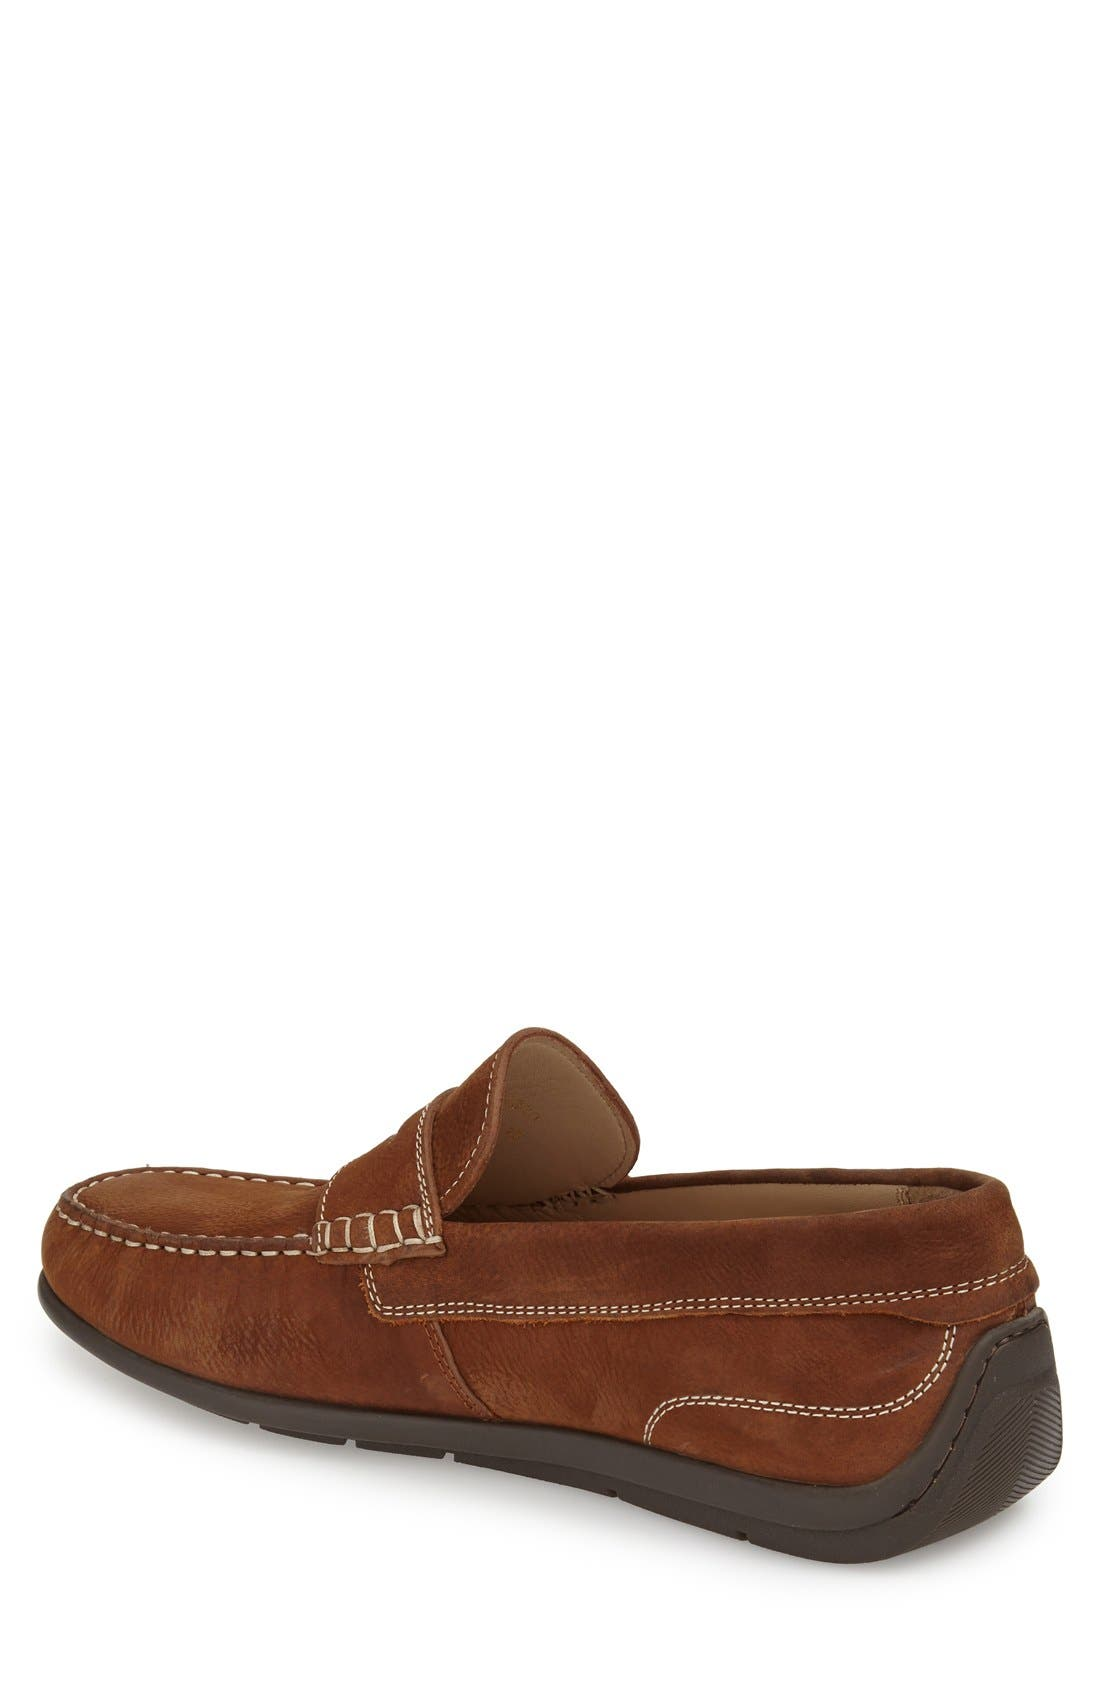 'Classic Moc 2.0' Penny Loafer,                             Alternate thumbnail 8, color,